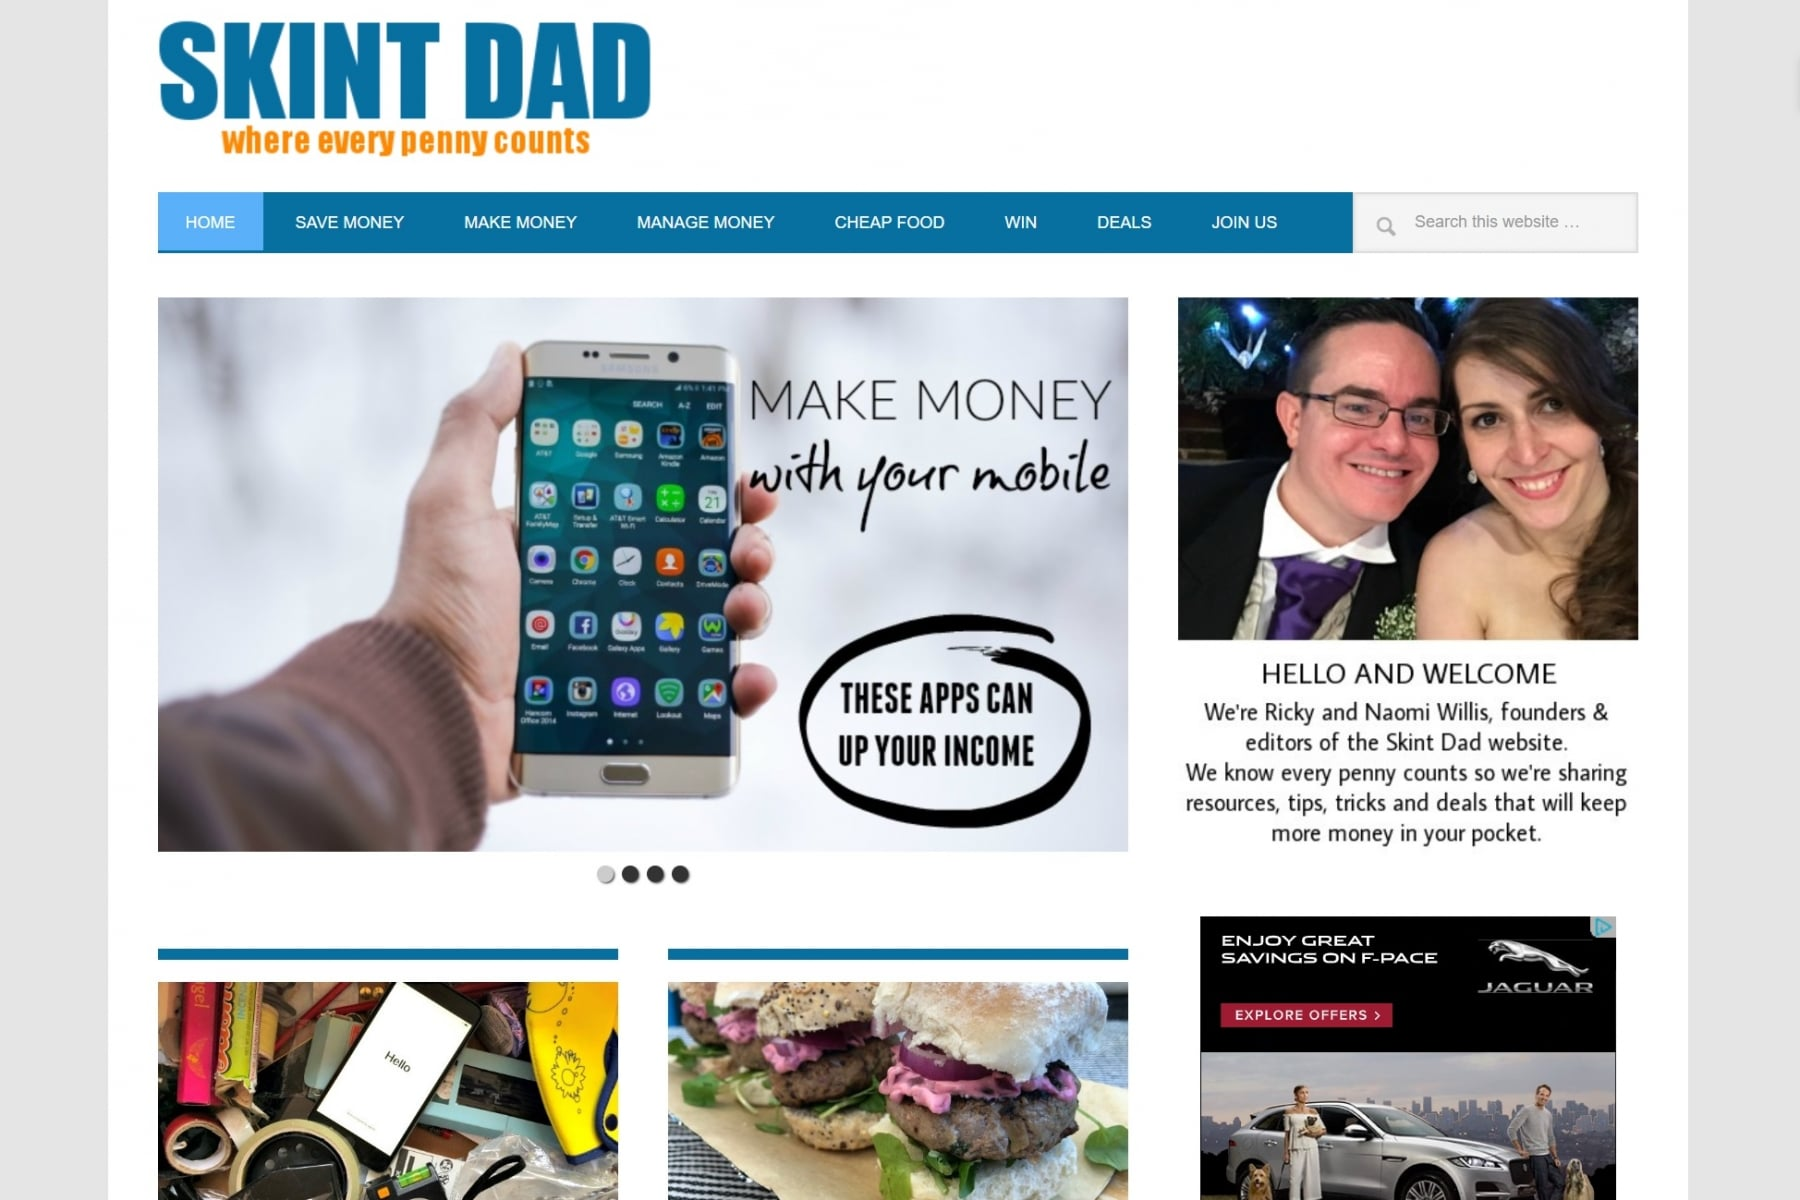 skint dad website